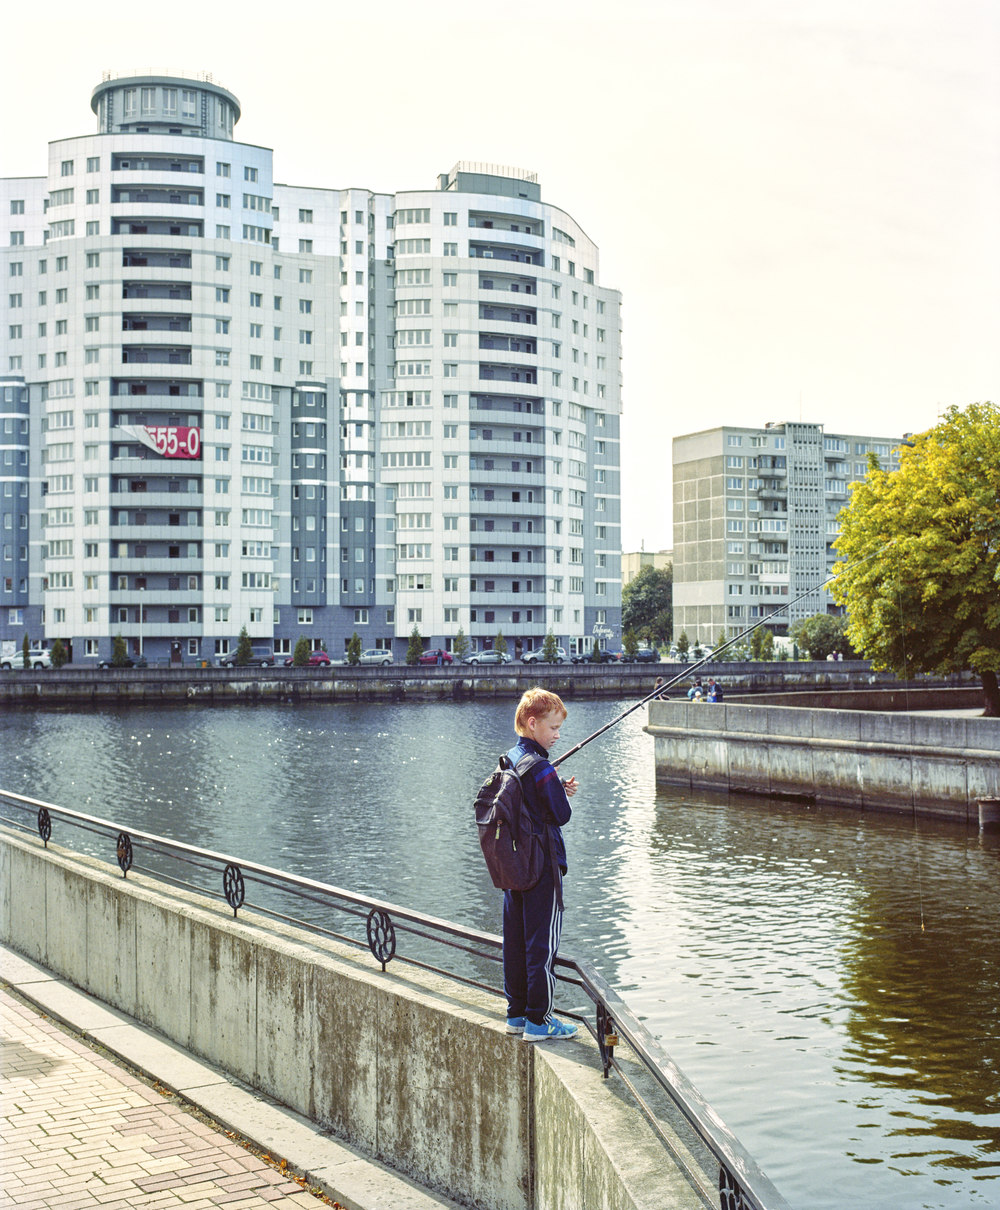 City fishing, Kaliningrad